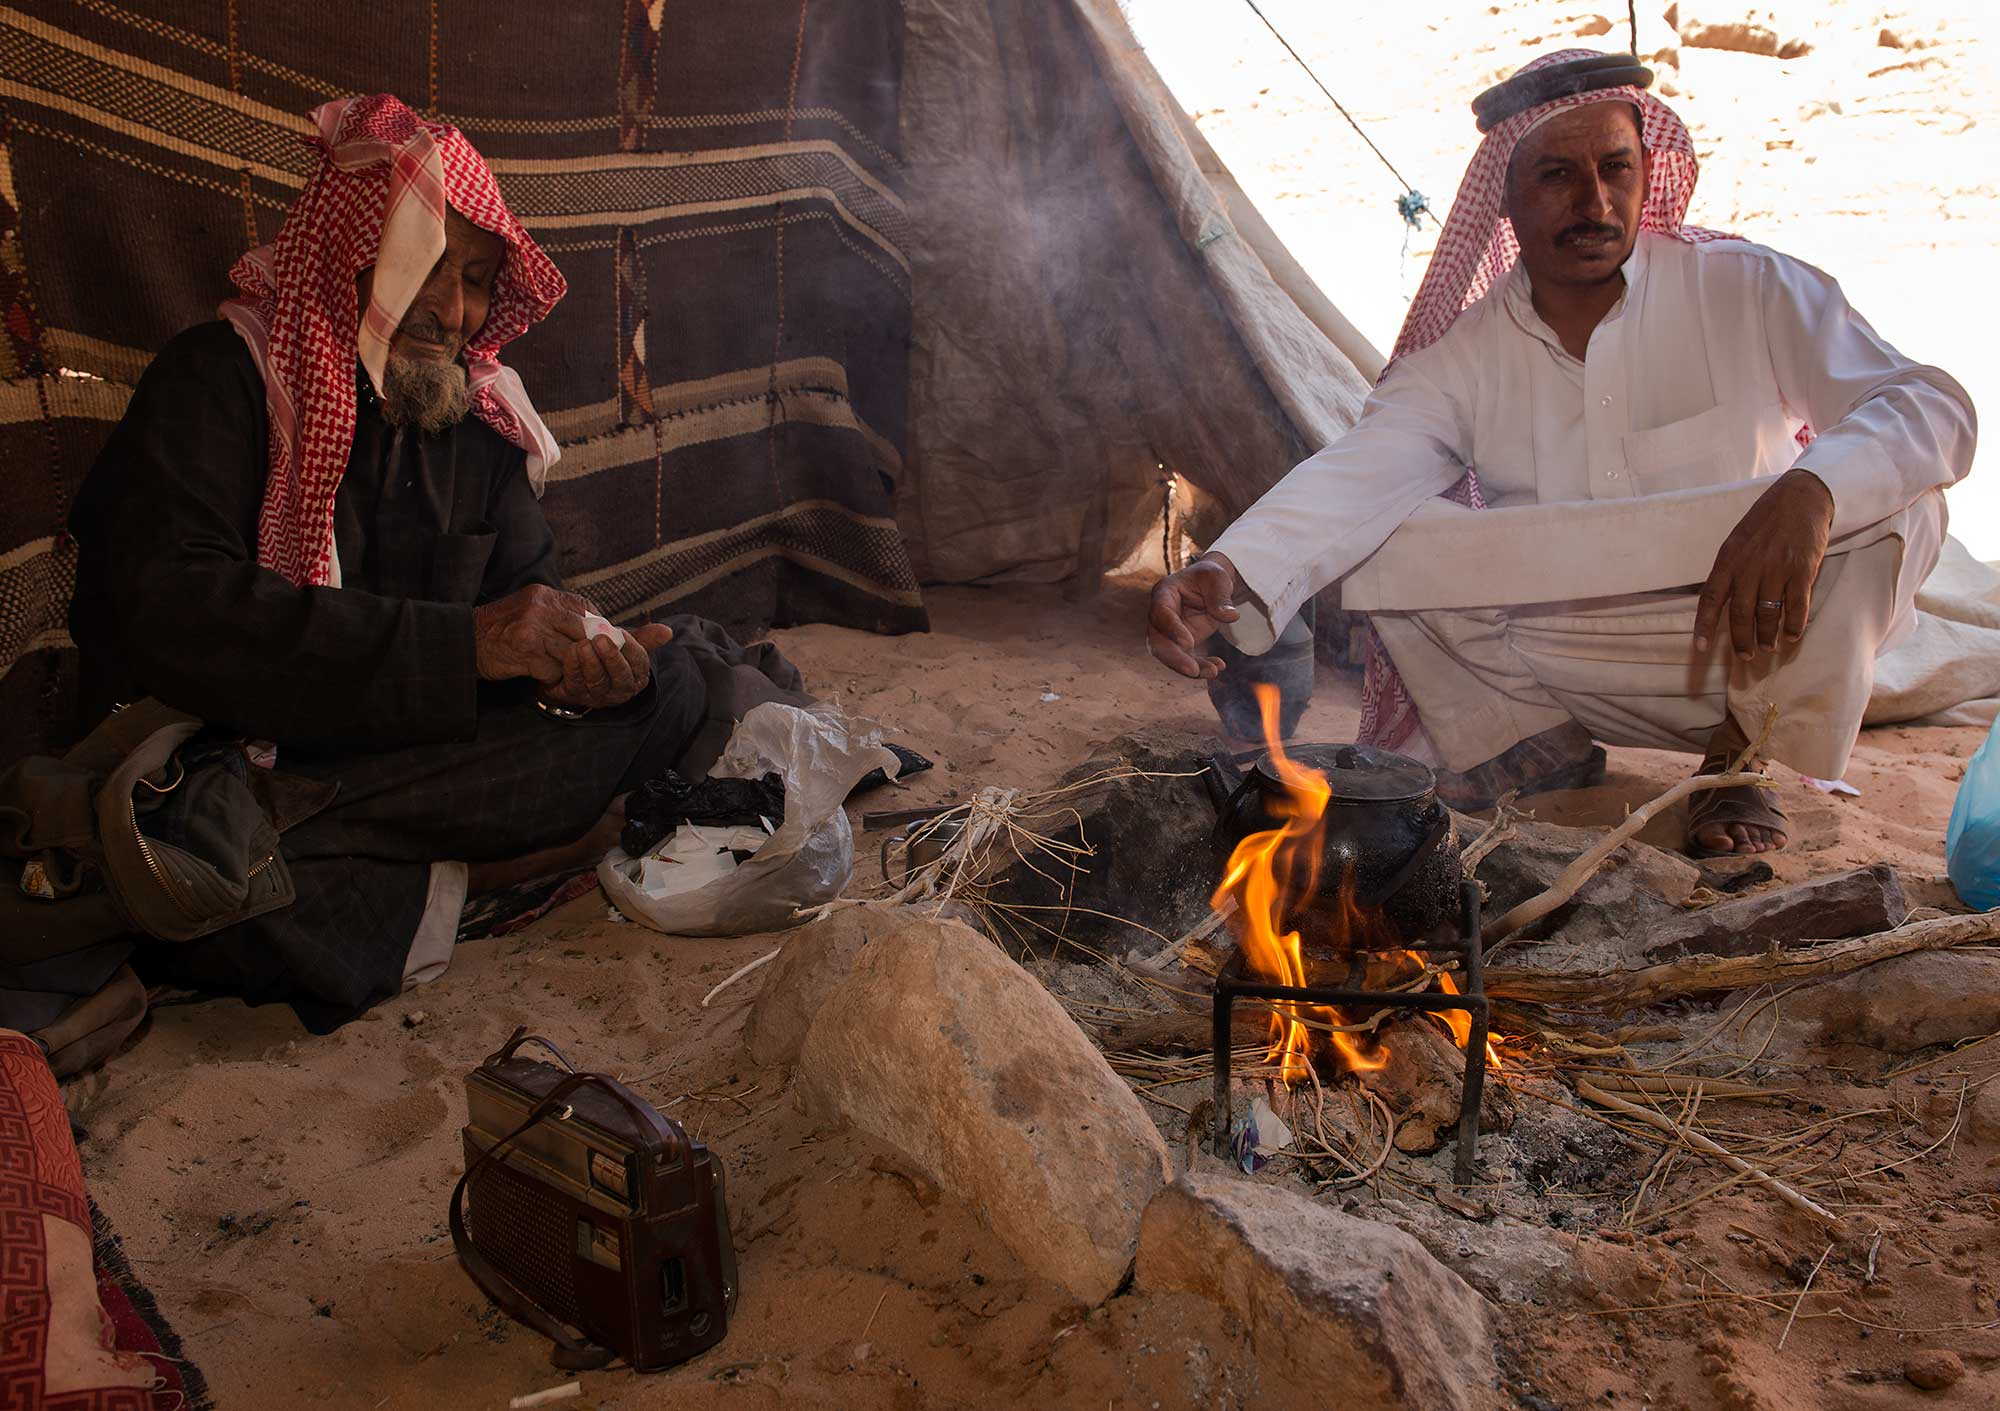 Friendly Hospitality at a Beduin Home in Wadi Rum